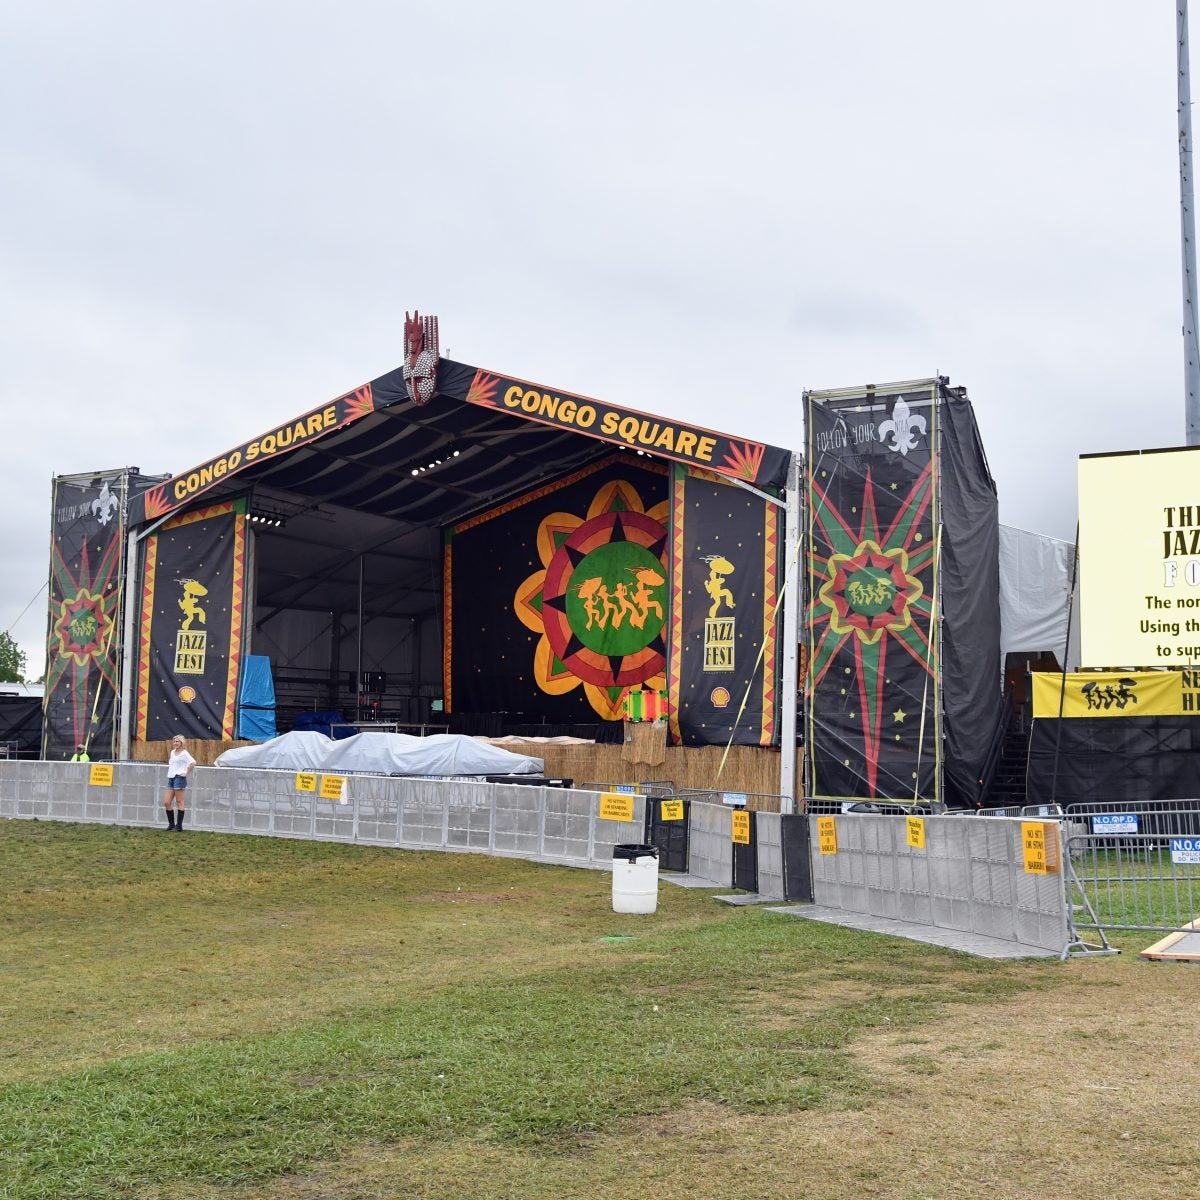 New Orleans Jazz Fest Canceled Due to COVID-19 Concerns